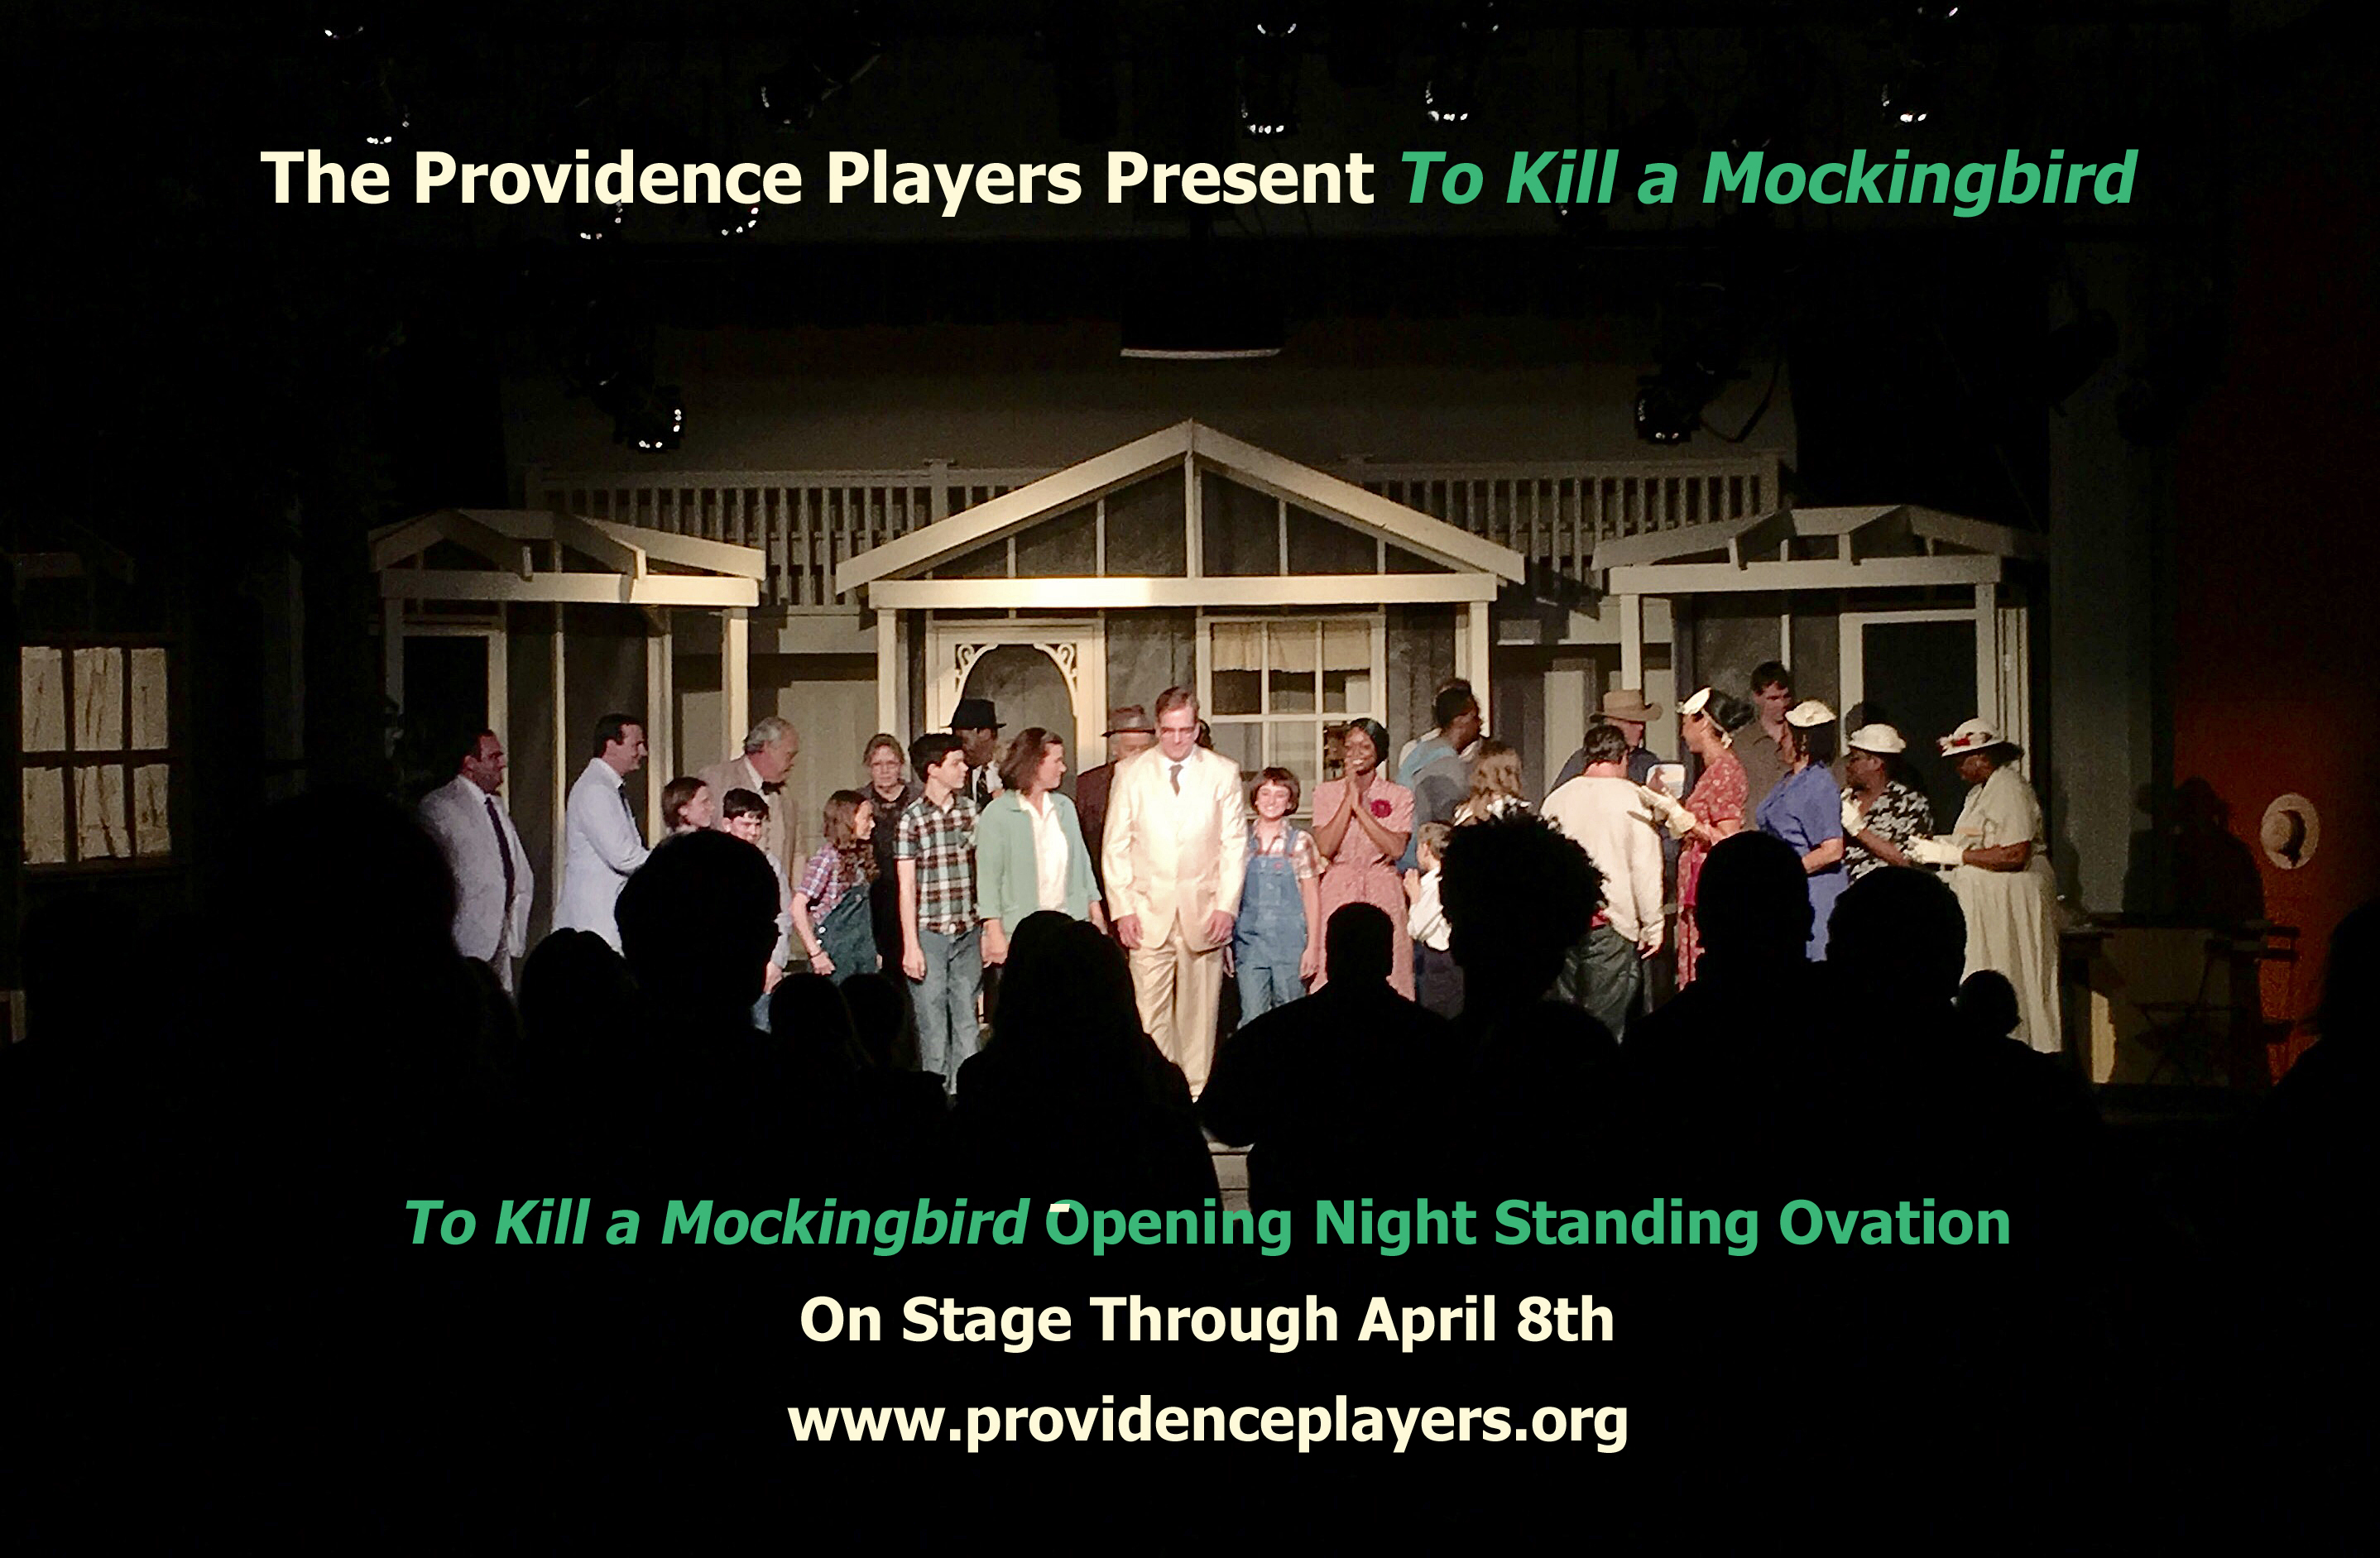 To Kill a Mockingbird Opening Night Standing Ovation Photo by Chip Gertzog Providence Players With Text